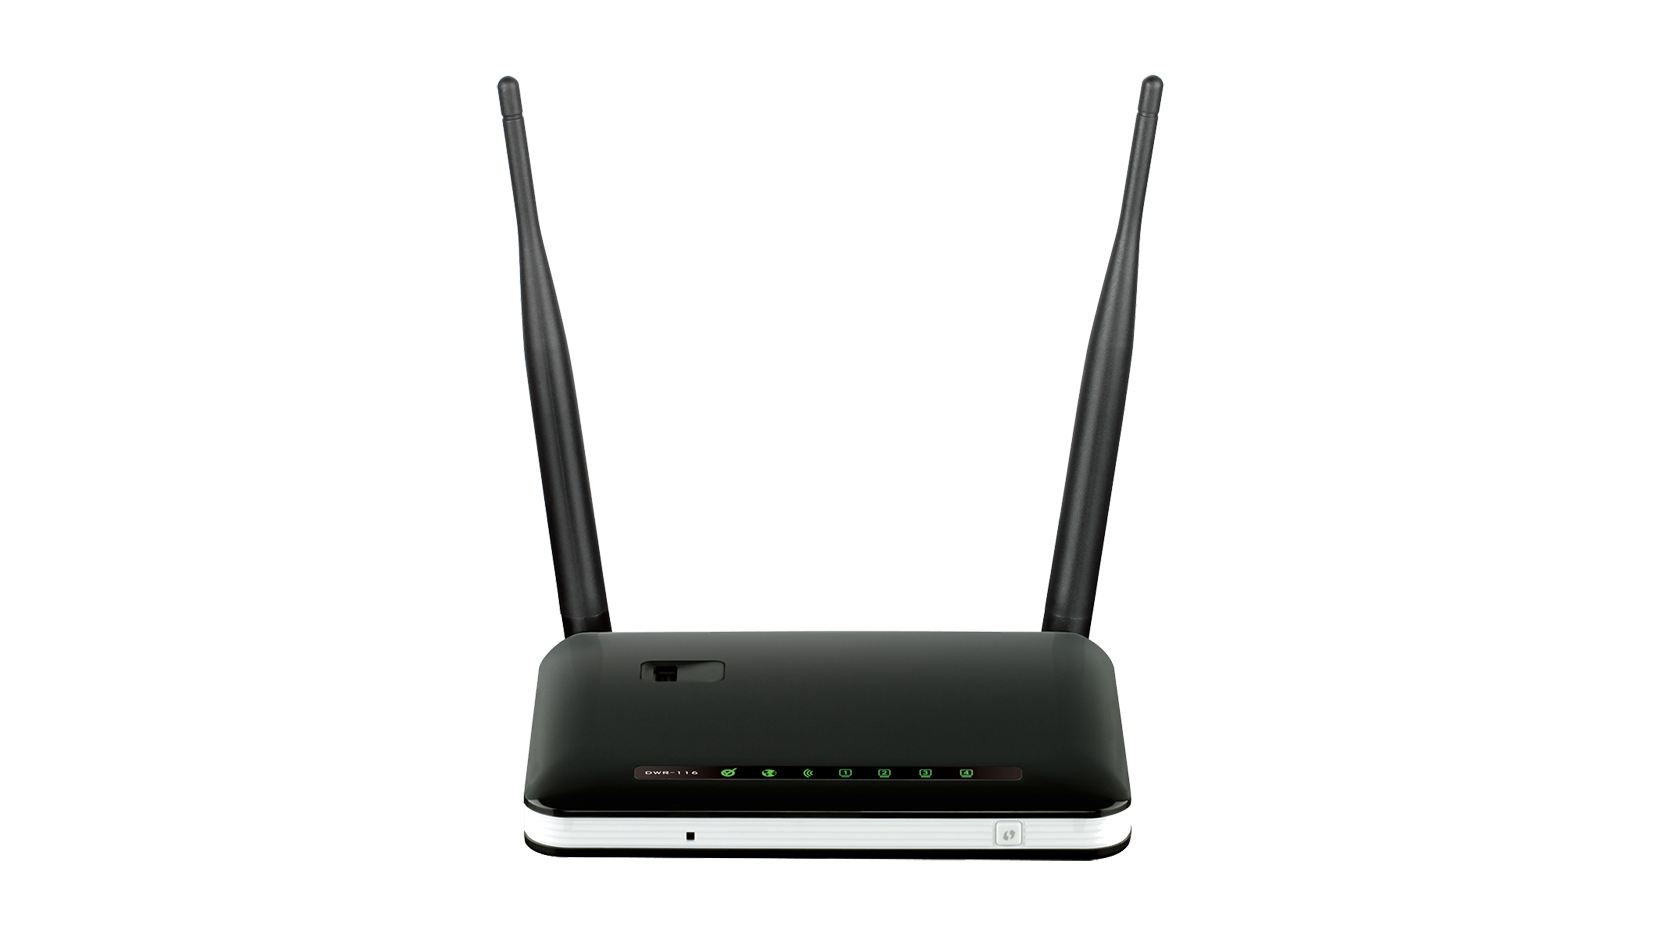 DWR 116 4G Wireless N300 Multi-WAN Router | D-Link Deutschland